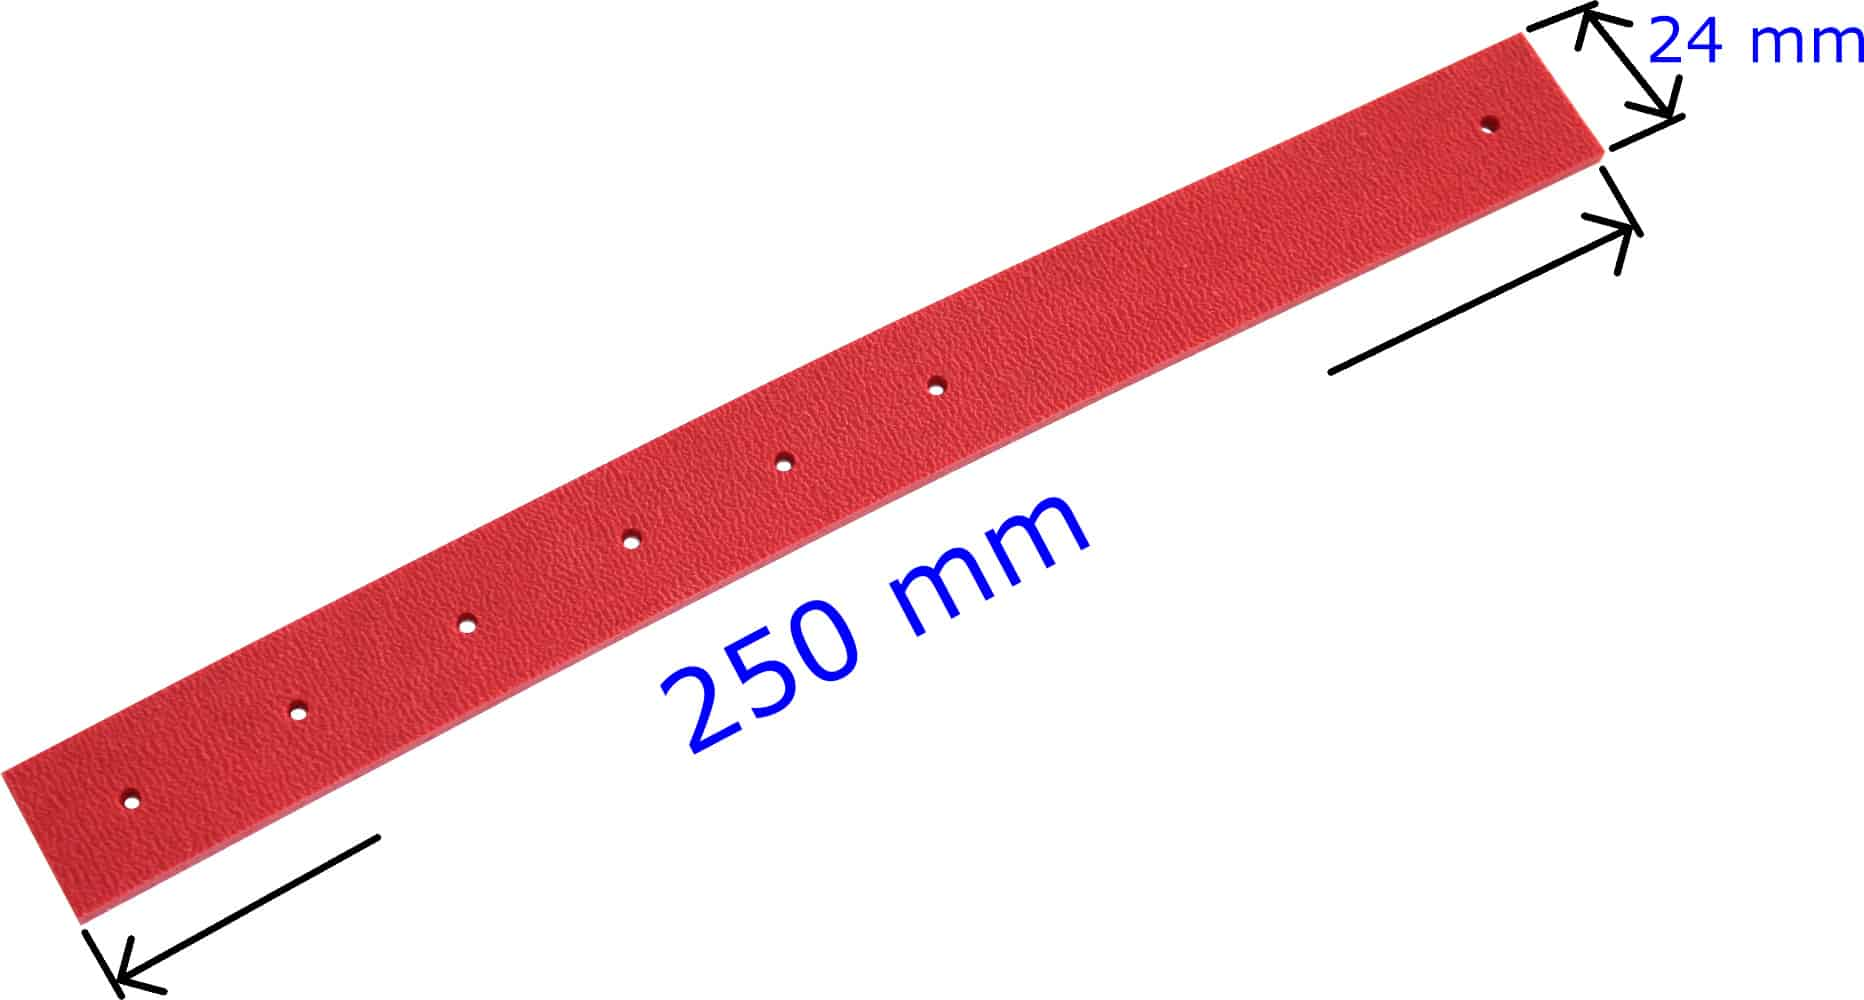 Rubber strap red Pedal pressure gauge Spare parts A731200 Raco